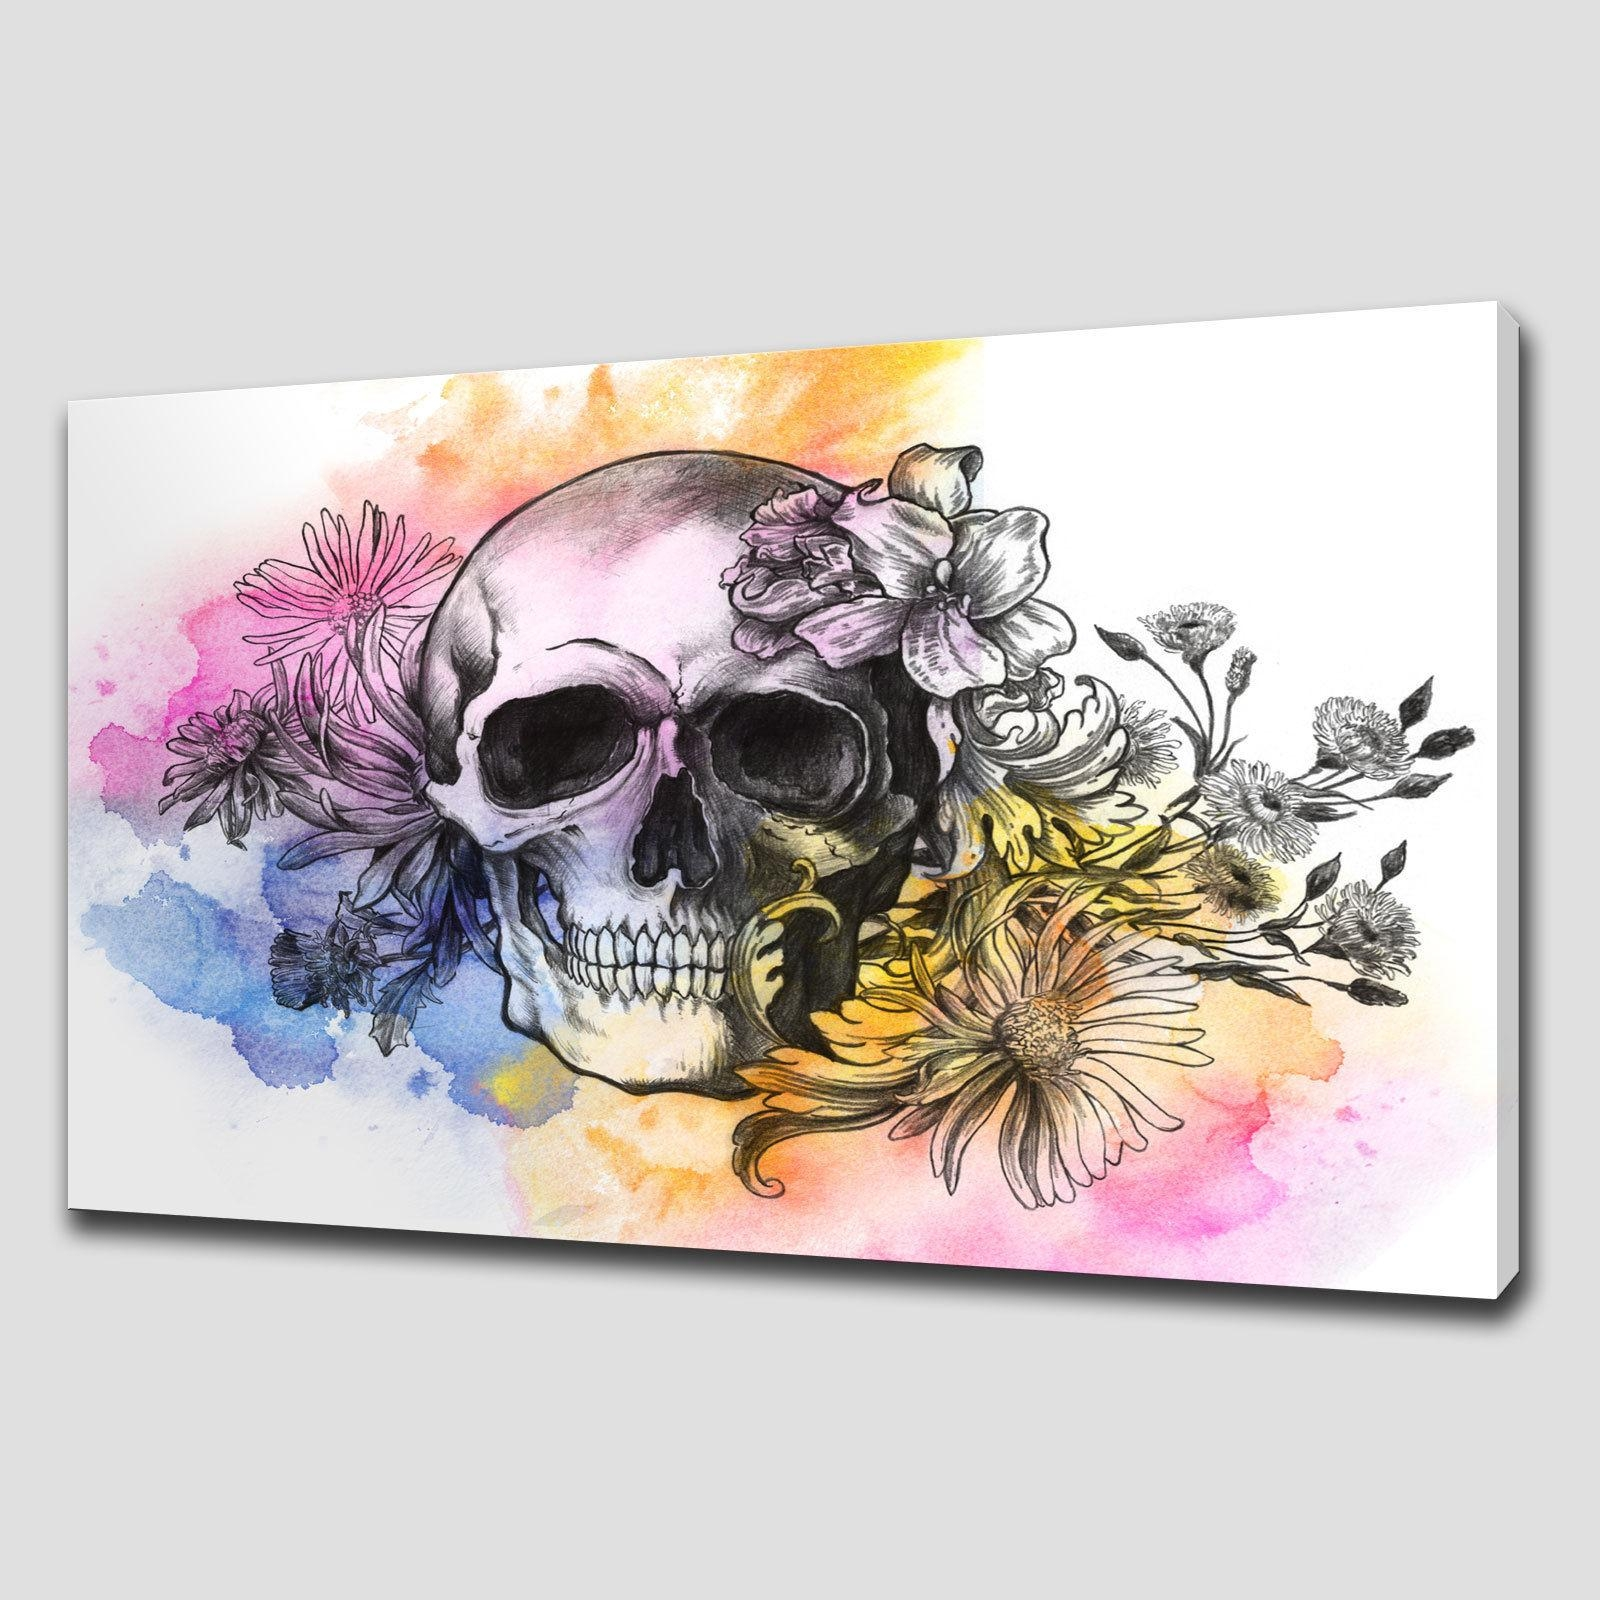 Floral Skull Large Canvas Wall Art – Canvas Print Art In Flower Wall Art Canvas (Image 12 of 20)